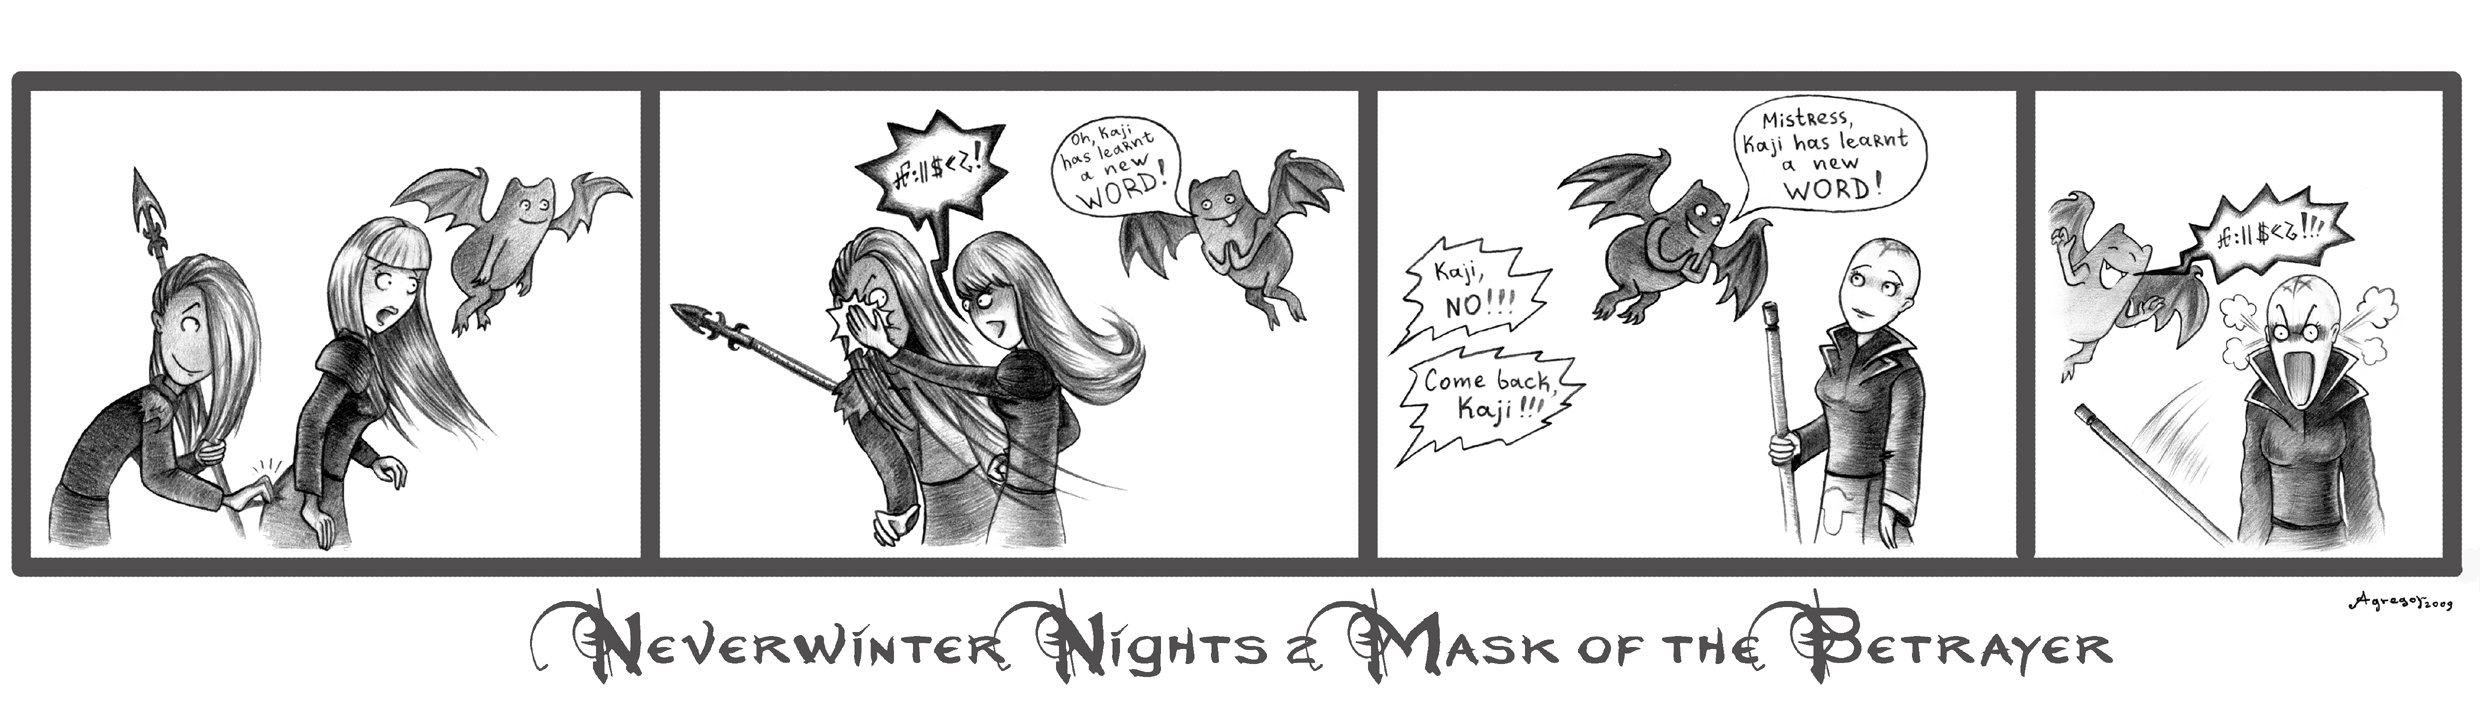 Neverwinter Nights coloring #6, Download drawings